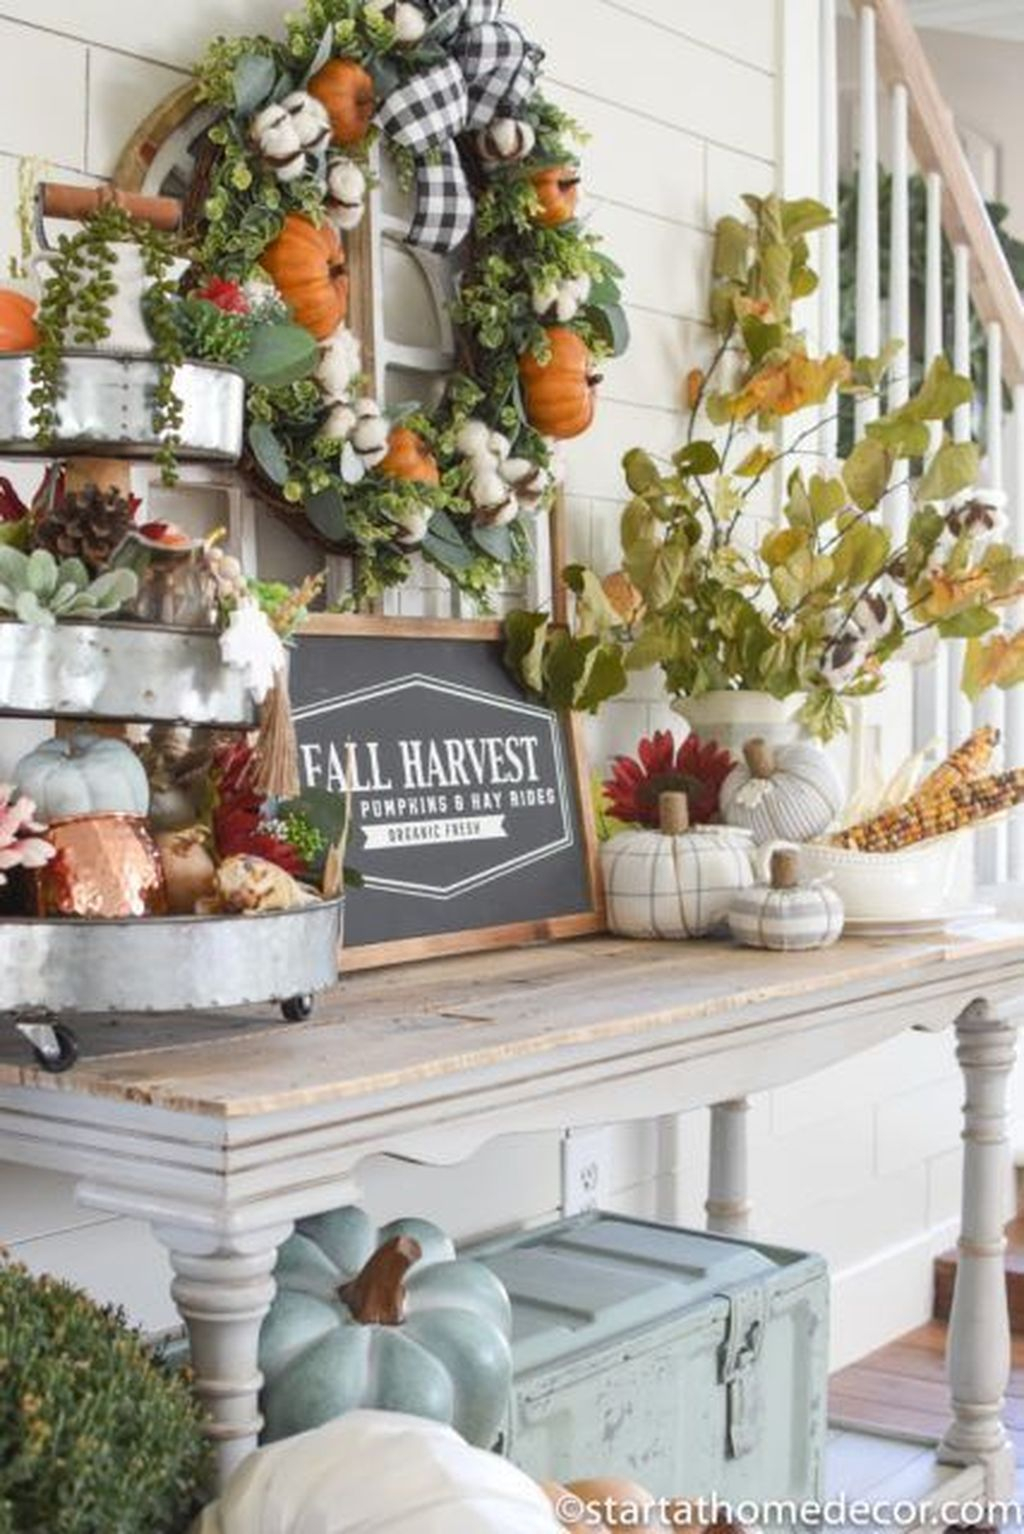 Inspiring Home Decor Design Ideas In Fall This Year 12